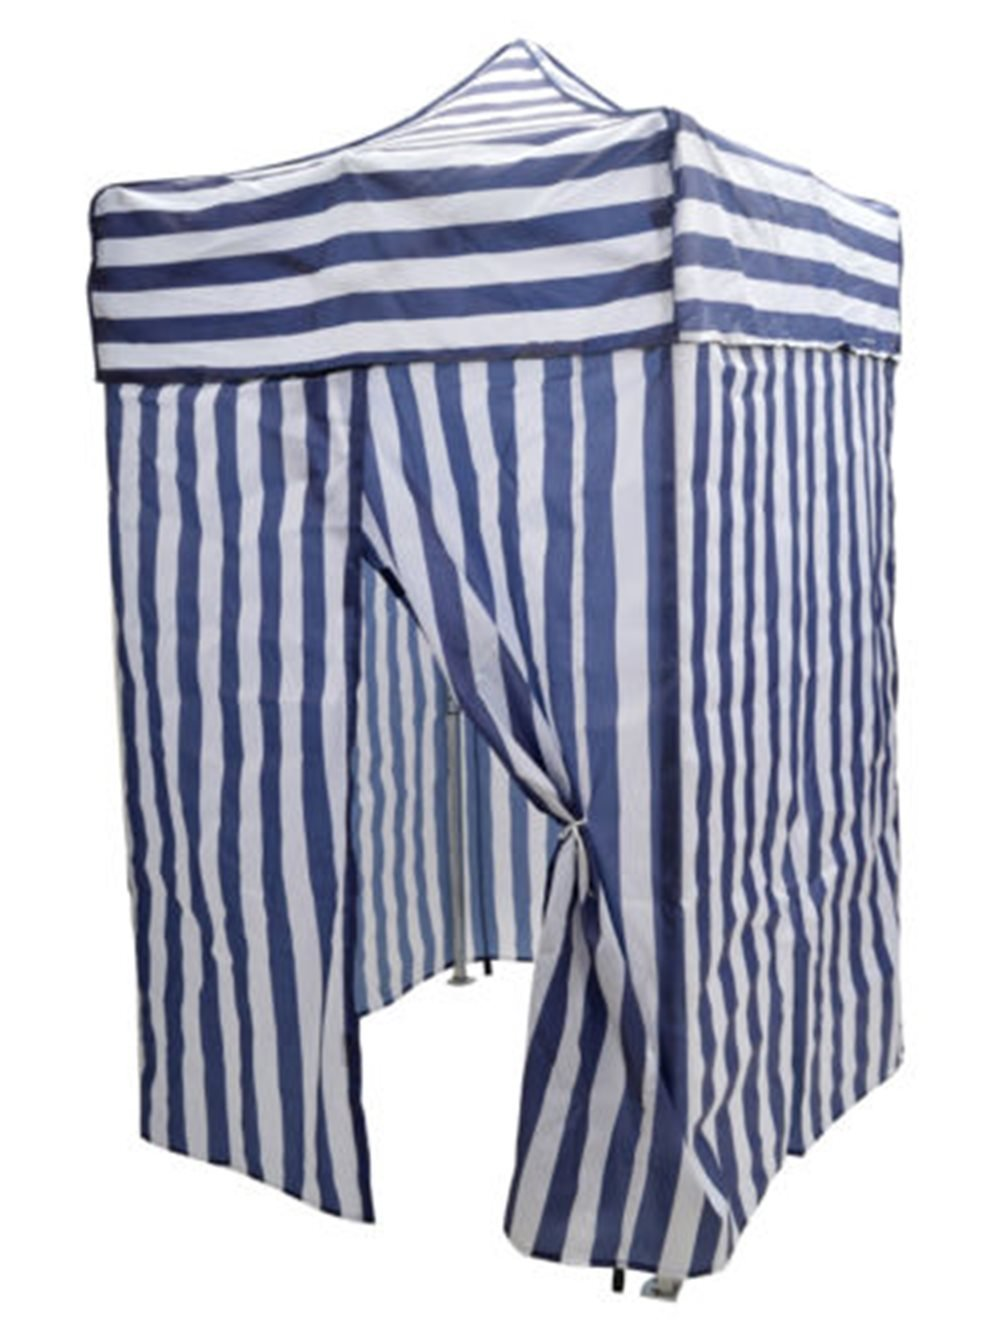 Tent Changing Room Camping Cabana Outdoor Pop Up Canopy Portable Blue Stripe by PTY-Shop-ForU (Image #1)